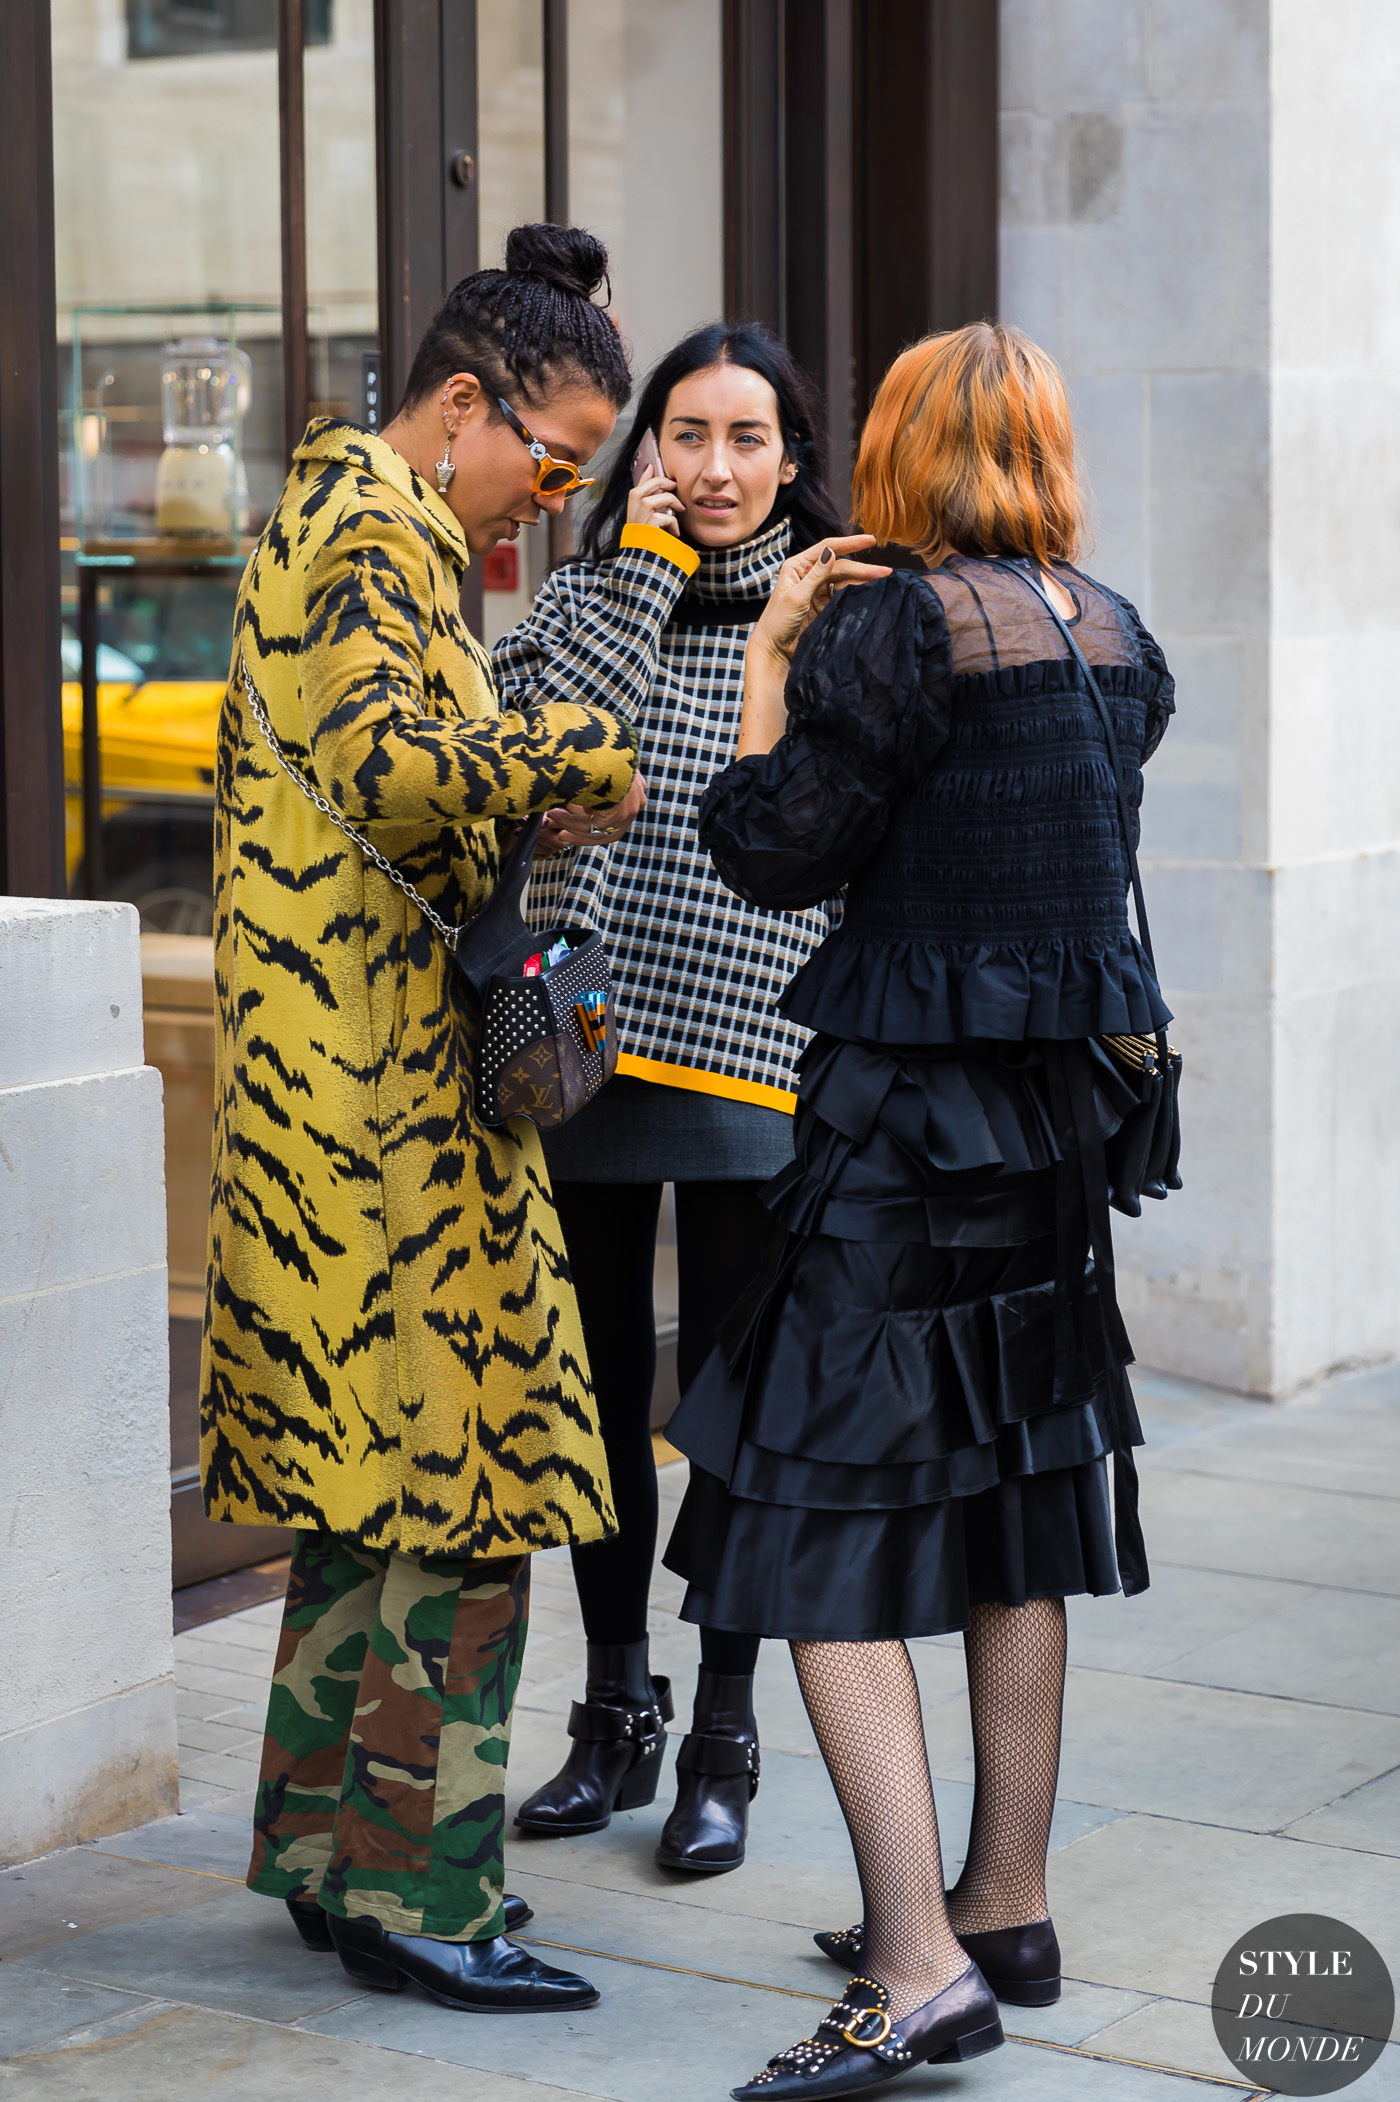 Nell Kalonji Elizabeth Fraser Bell and Katie Shillingford by STYLEDUMONDE Street Style Fashion Photography_48A6051